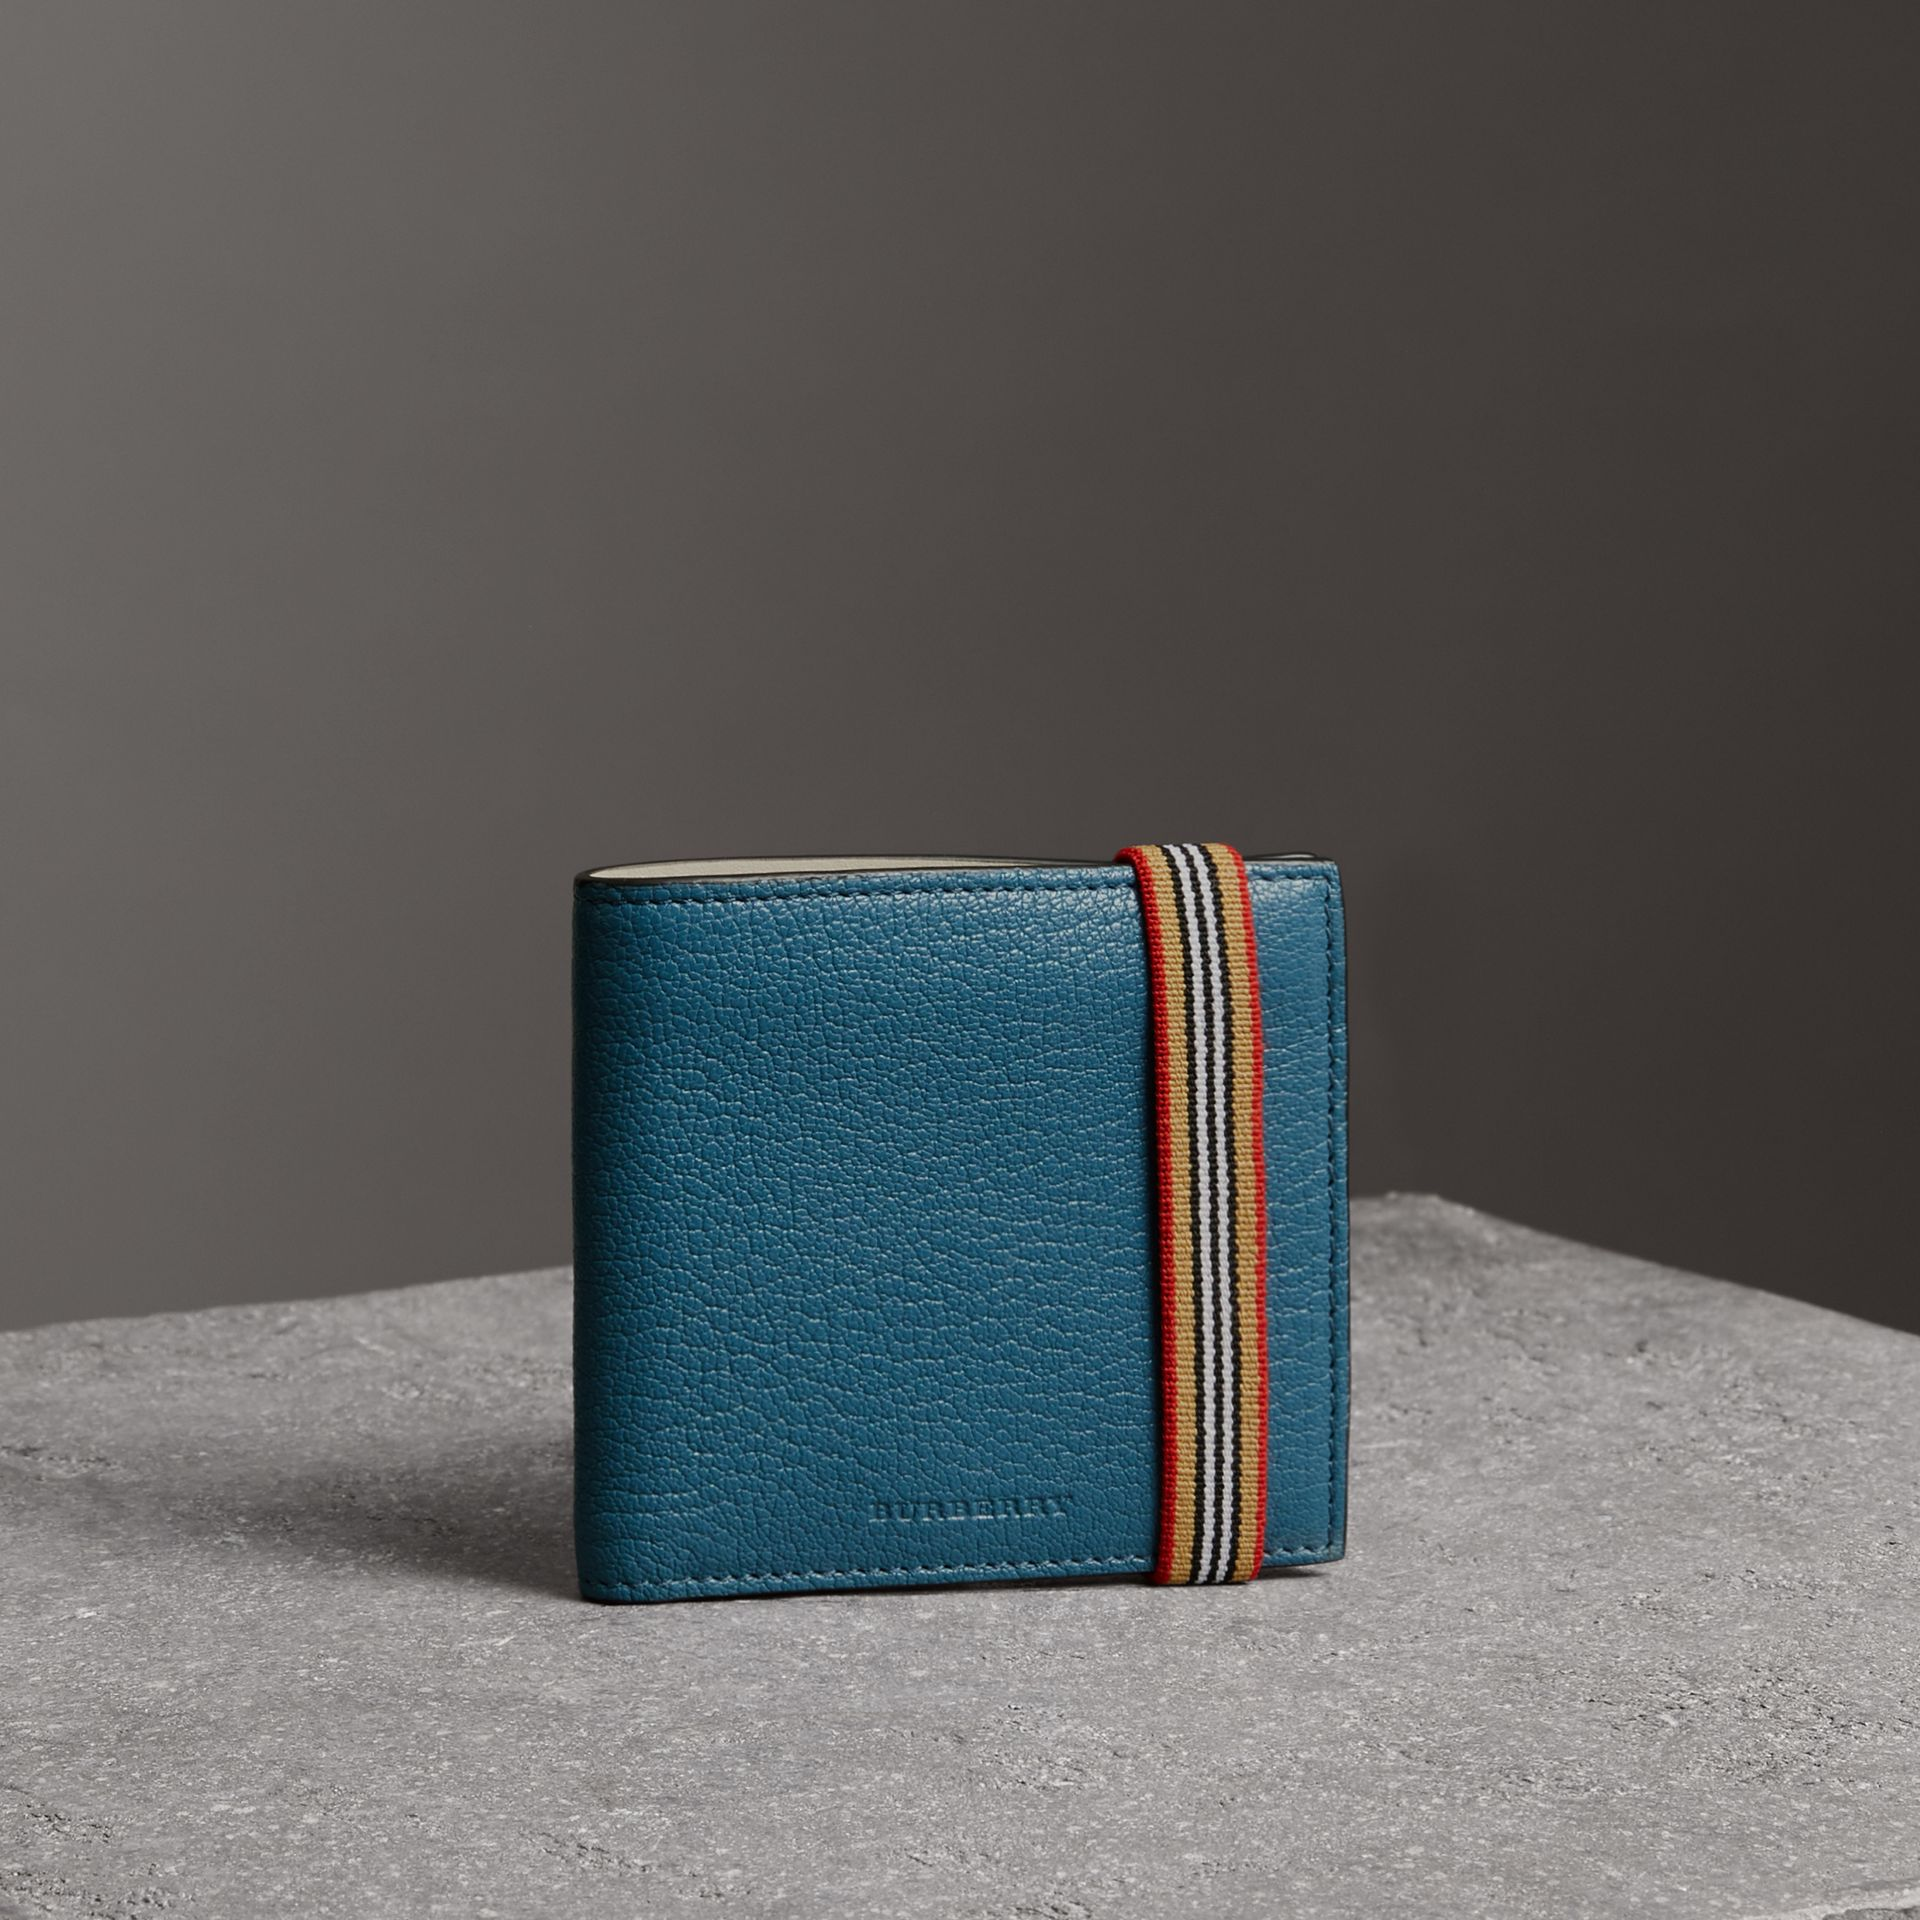 Heritage Stripe Leather International Bifold Wallet in Peacock Blue - Men | Burberry United Kingdom - gallery image 0